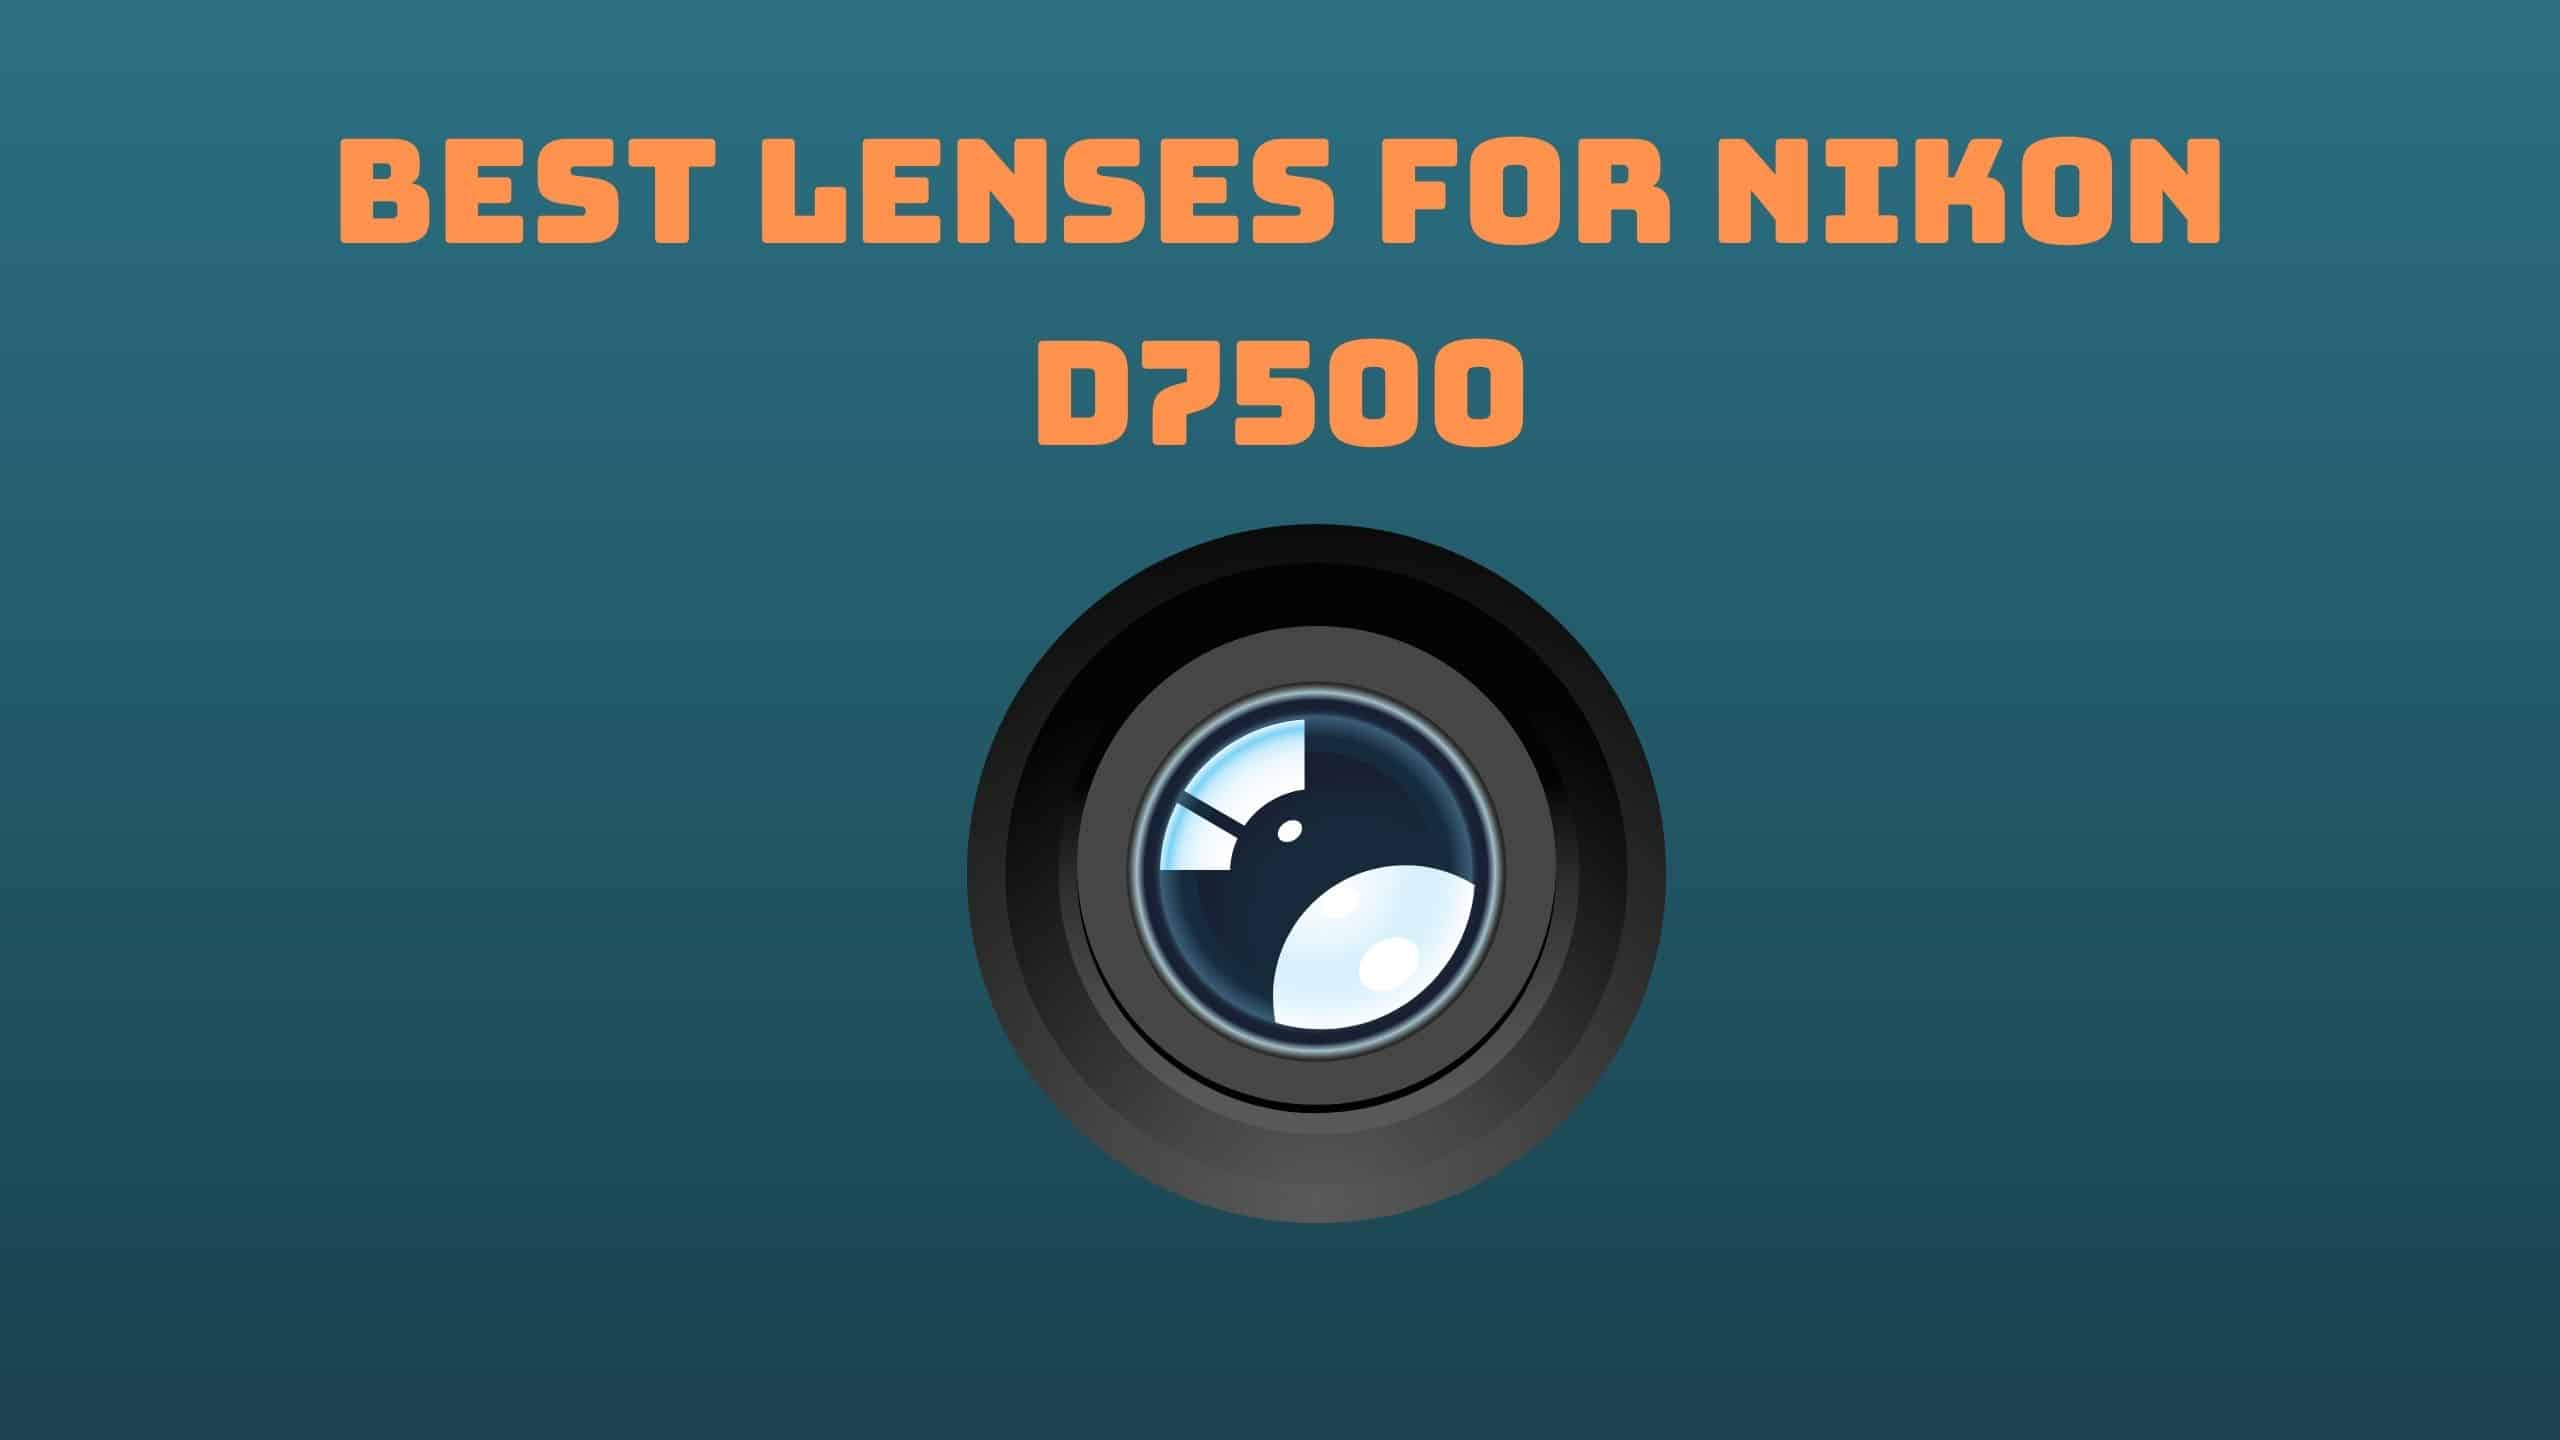 Best Lenses for Nikon D7500